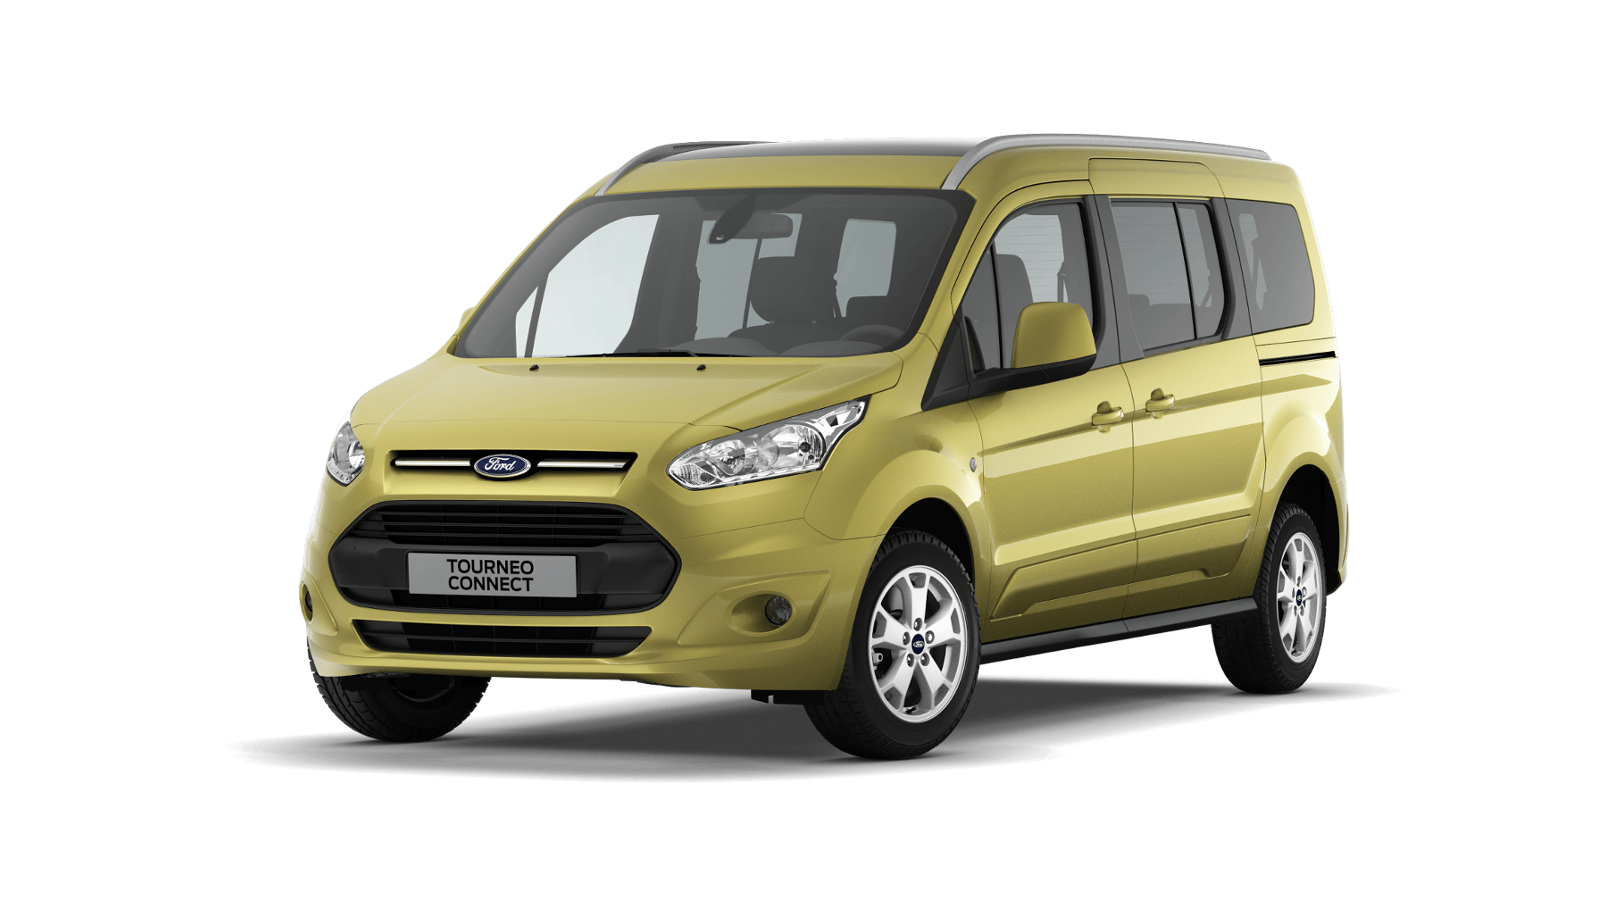 9 Seater Car >> 7 Seater And 9 Seater Car Rental Wiber Rent A Car